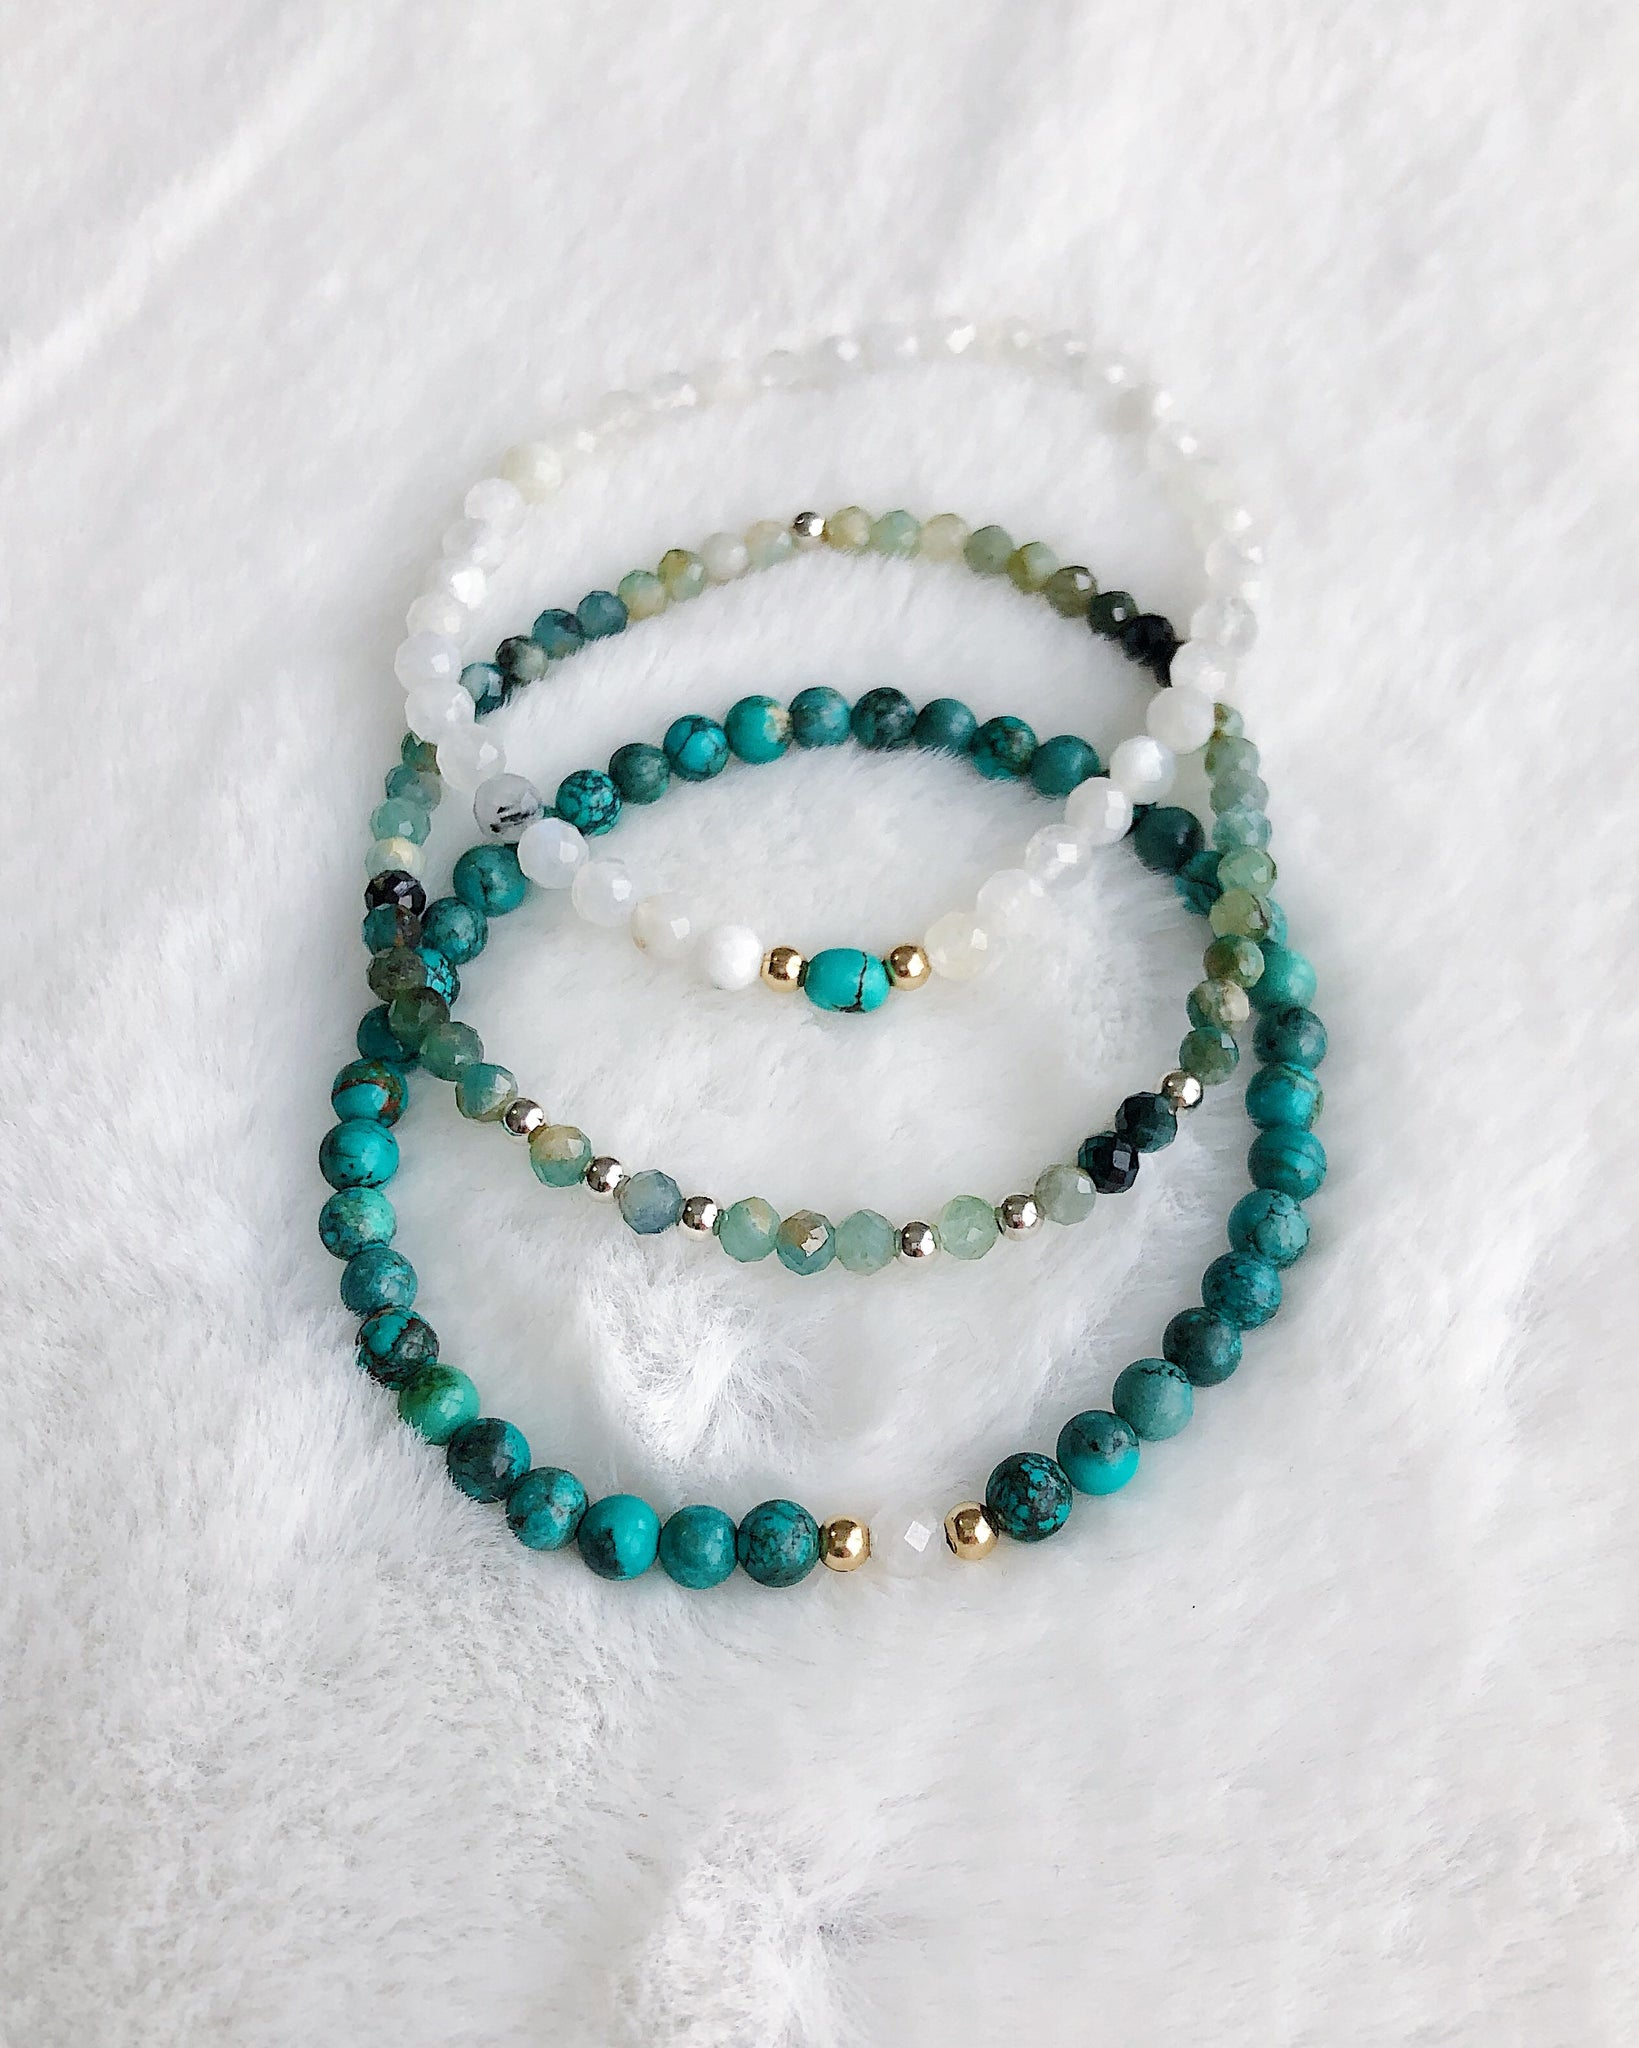 Moonstone Turquoise Grandidierite Stack - Silver